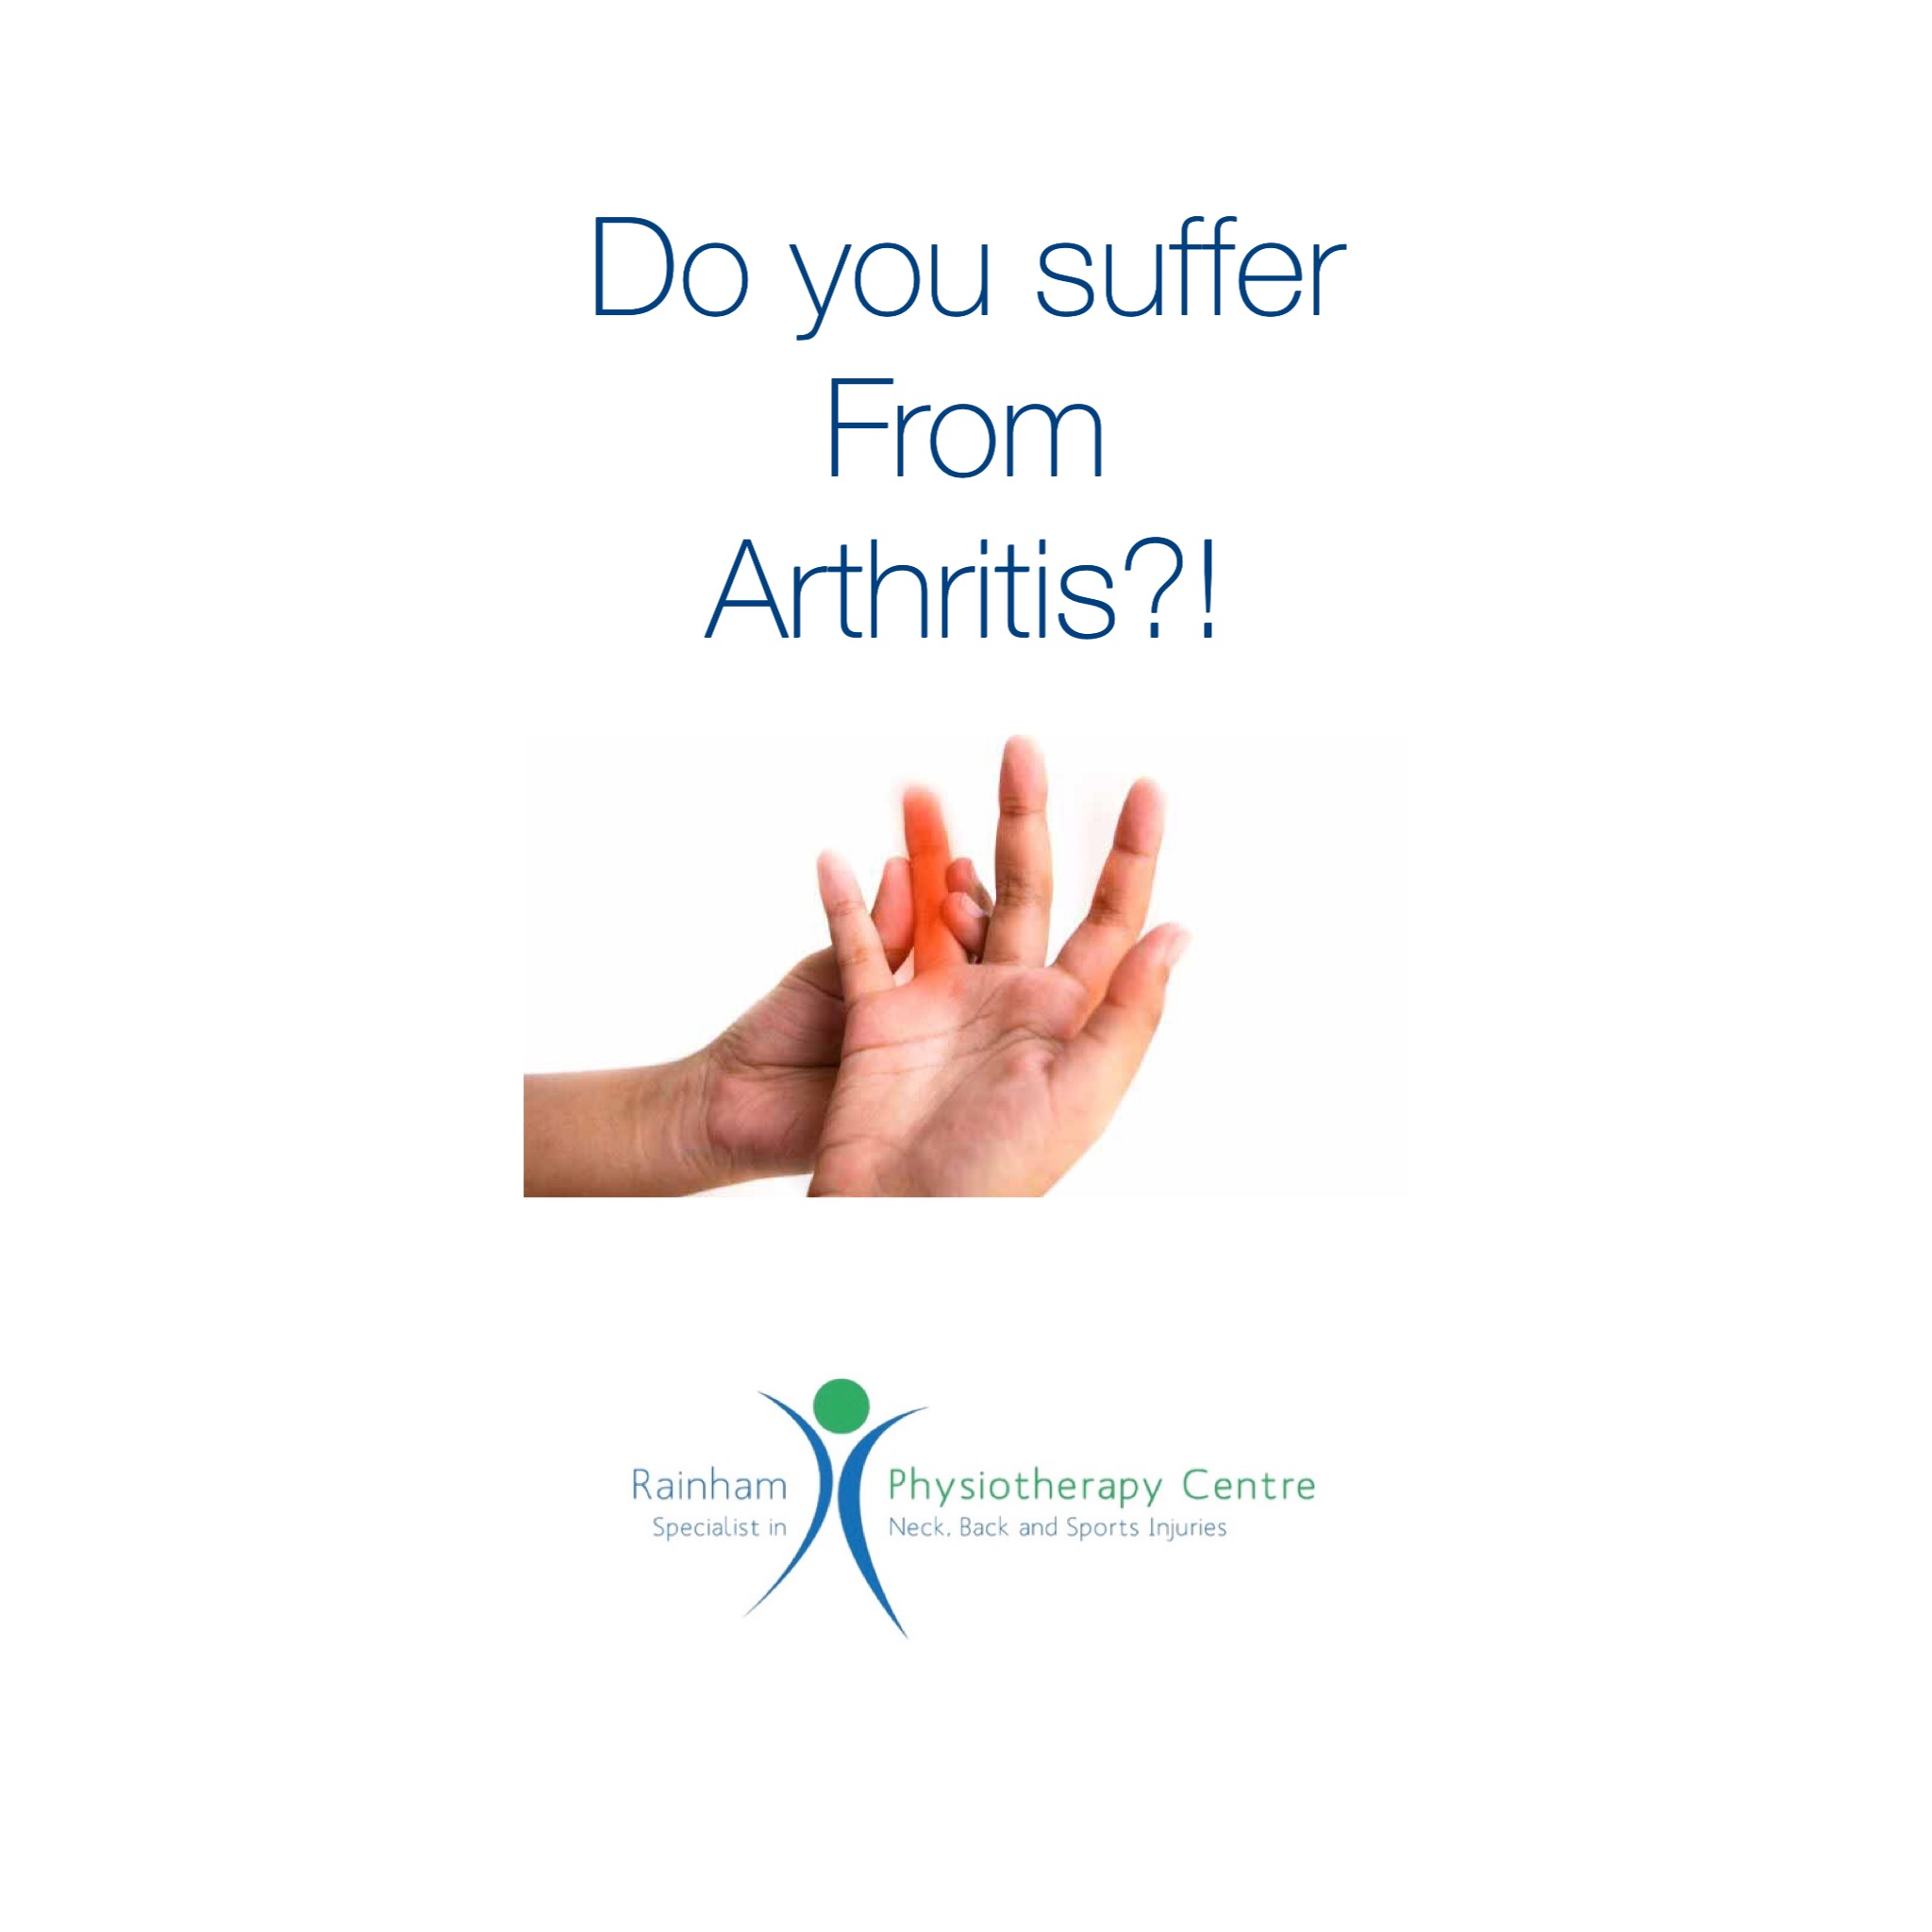 Do you suffer from Arthritis?